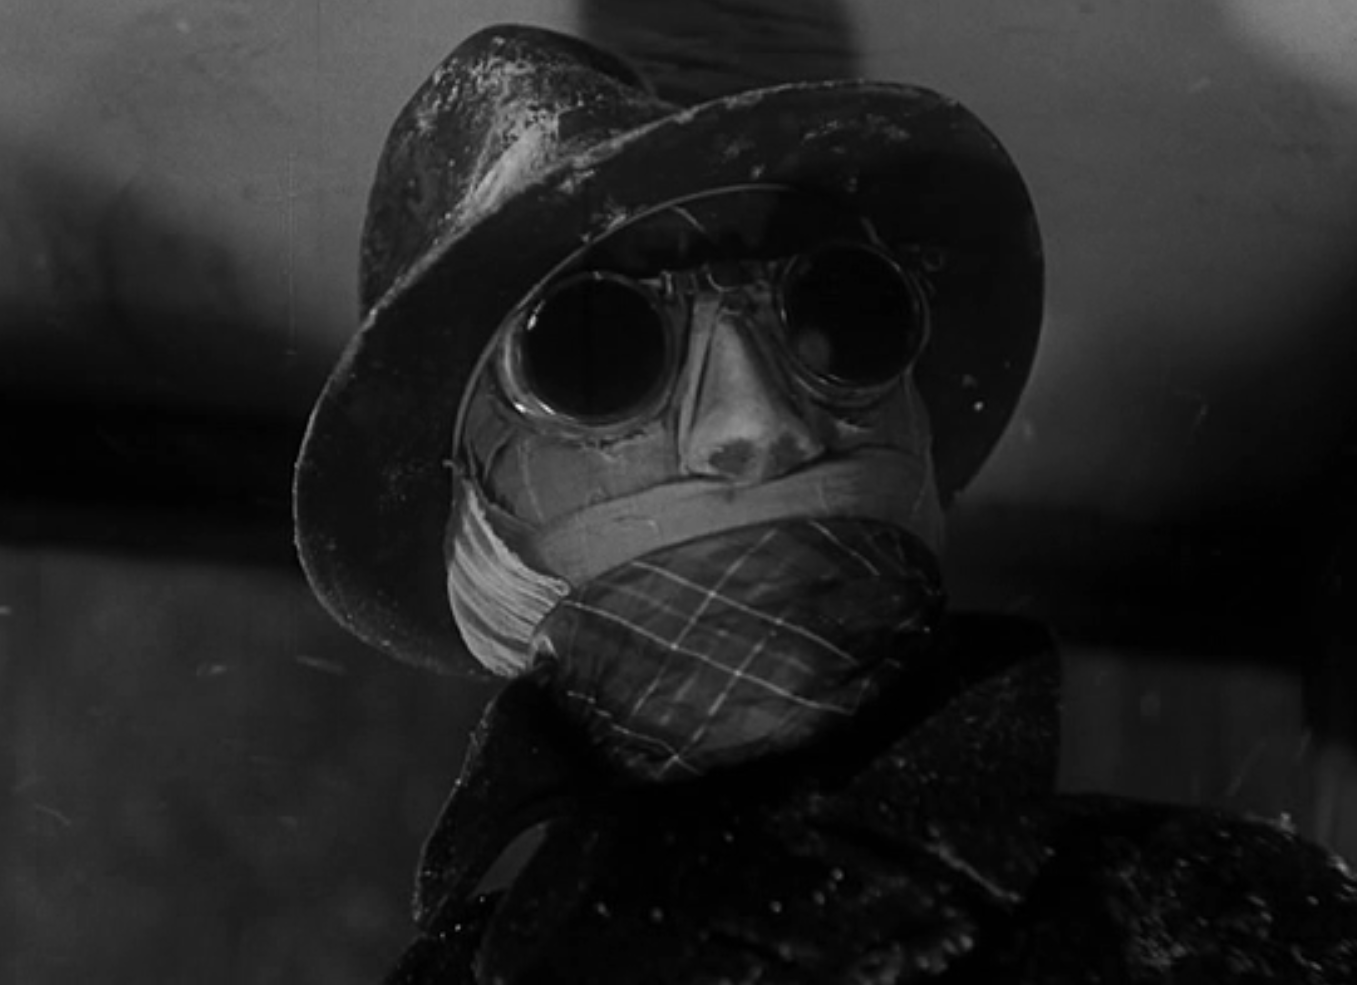 The Invisible Man: 31 Days of Horror